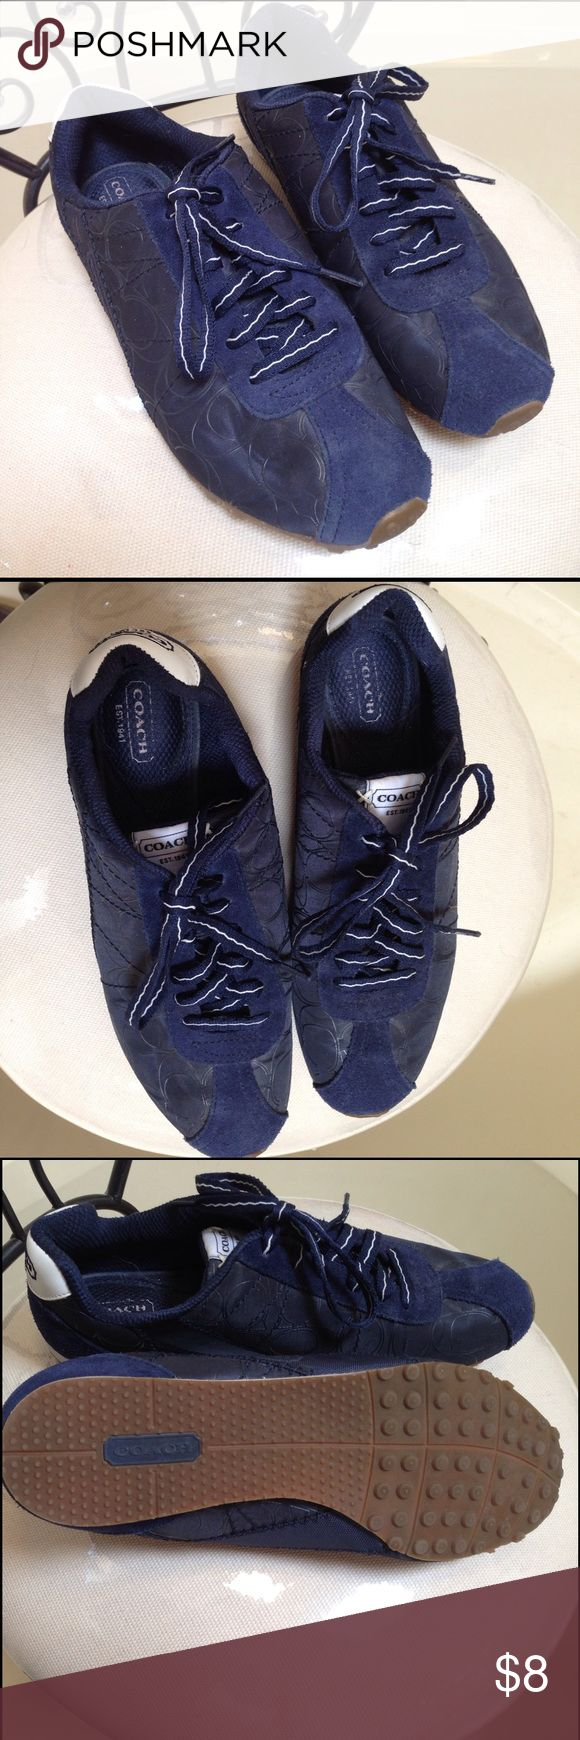 Used Coach tennis shoes Navy blue Coach tennis shoes. Previously worn but in good condition Shoes Sneakers